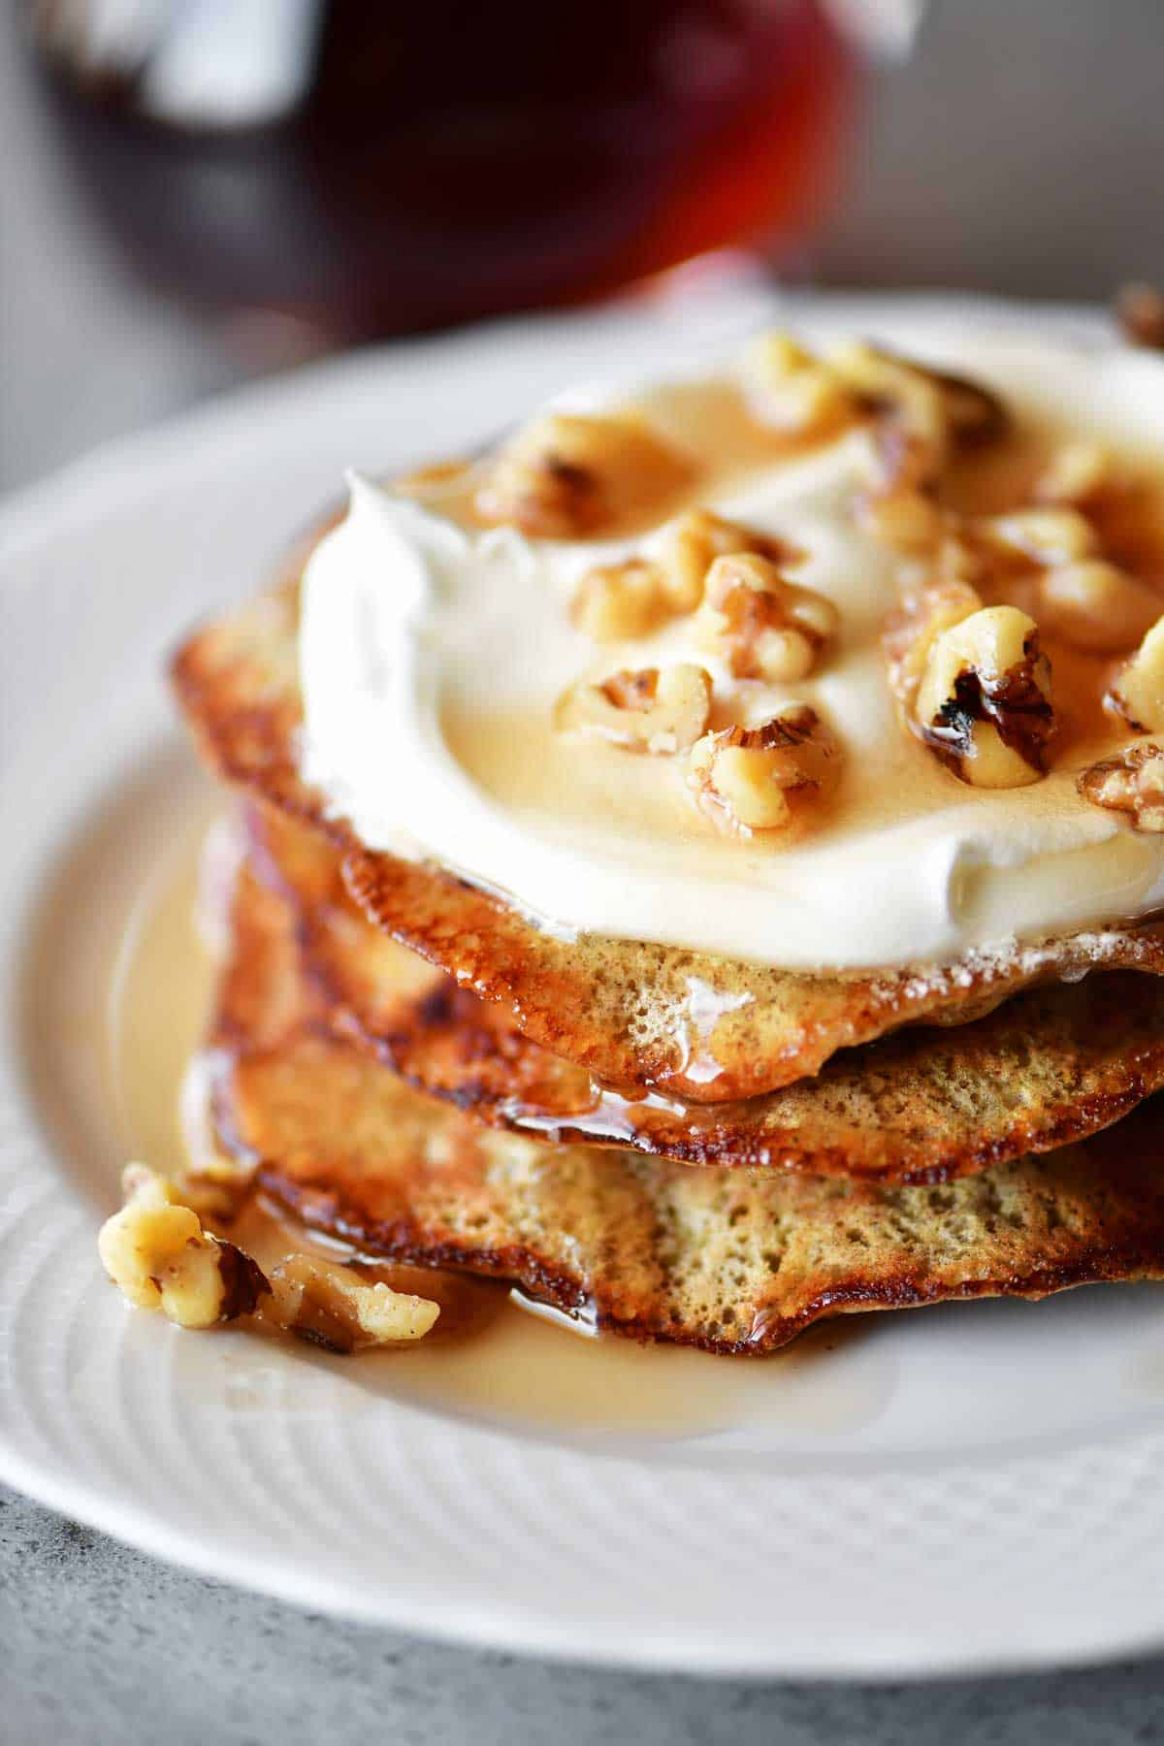 Banana Pancakes - Breakfast Recipes Using Bananas